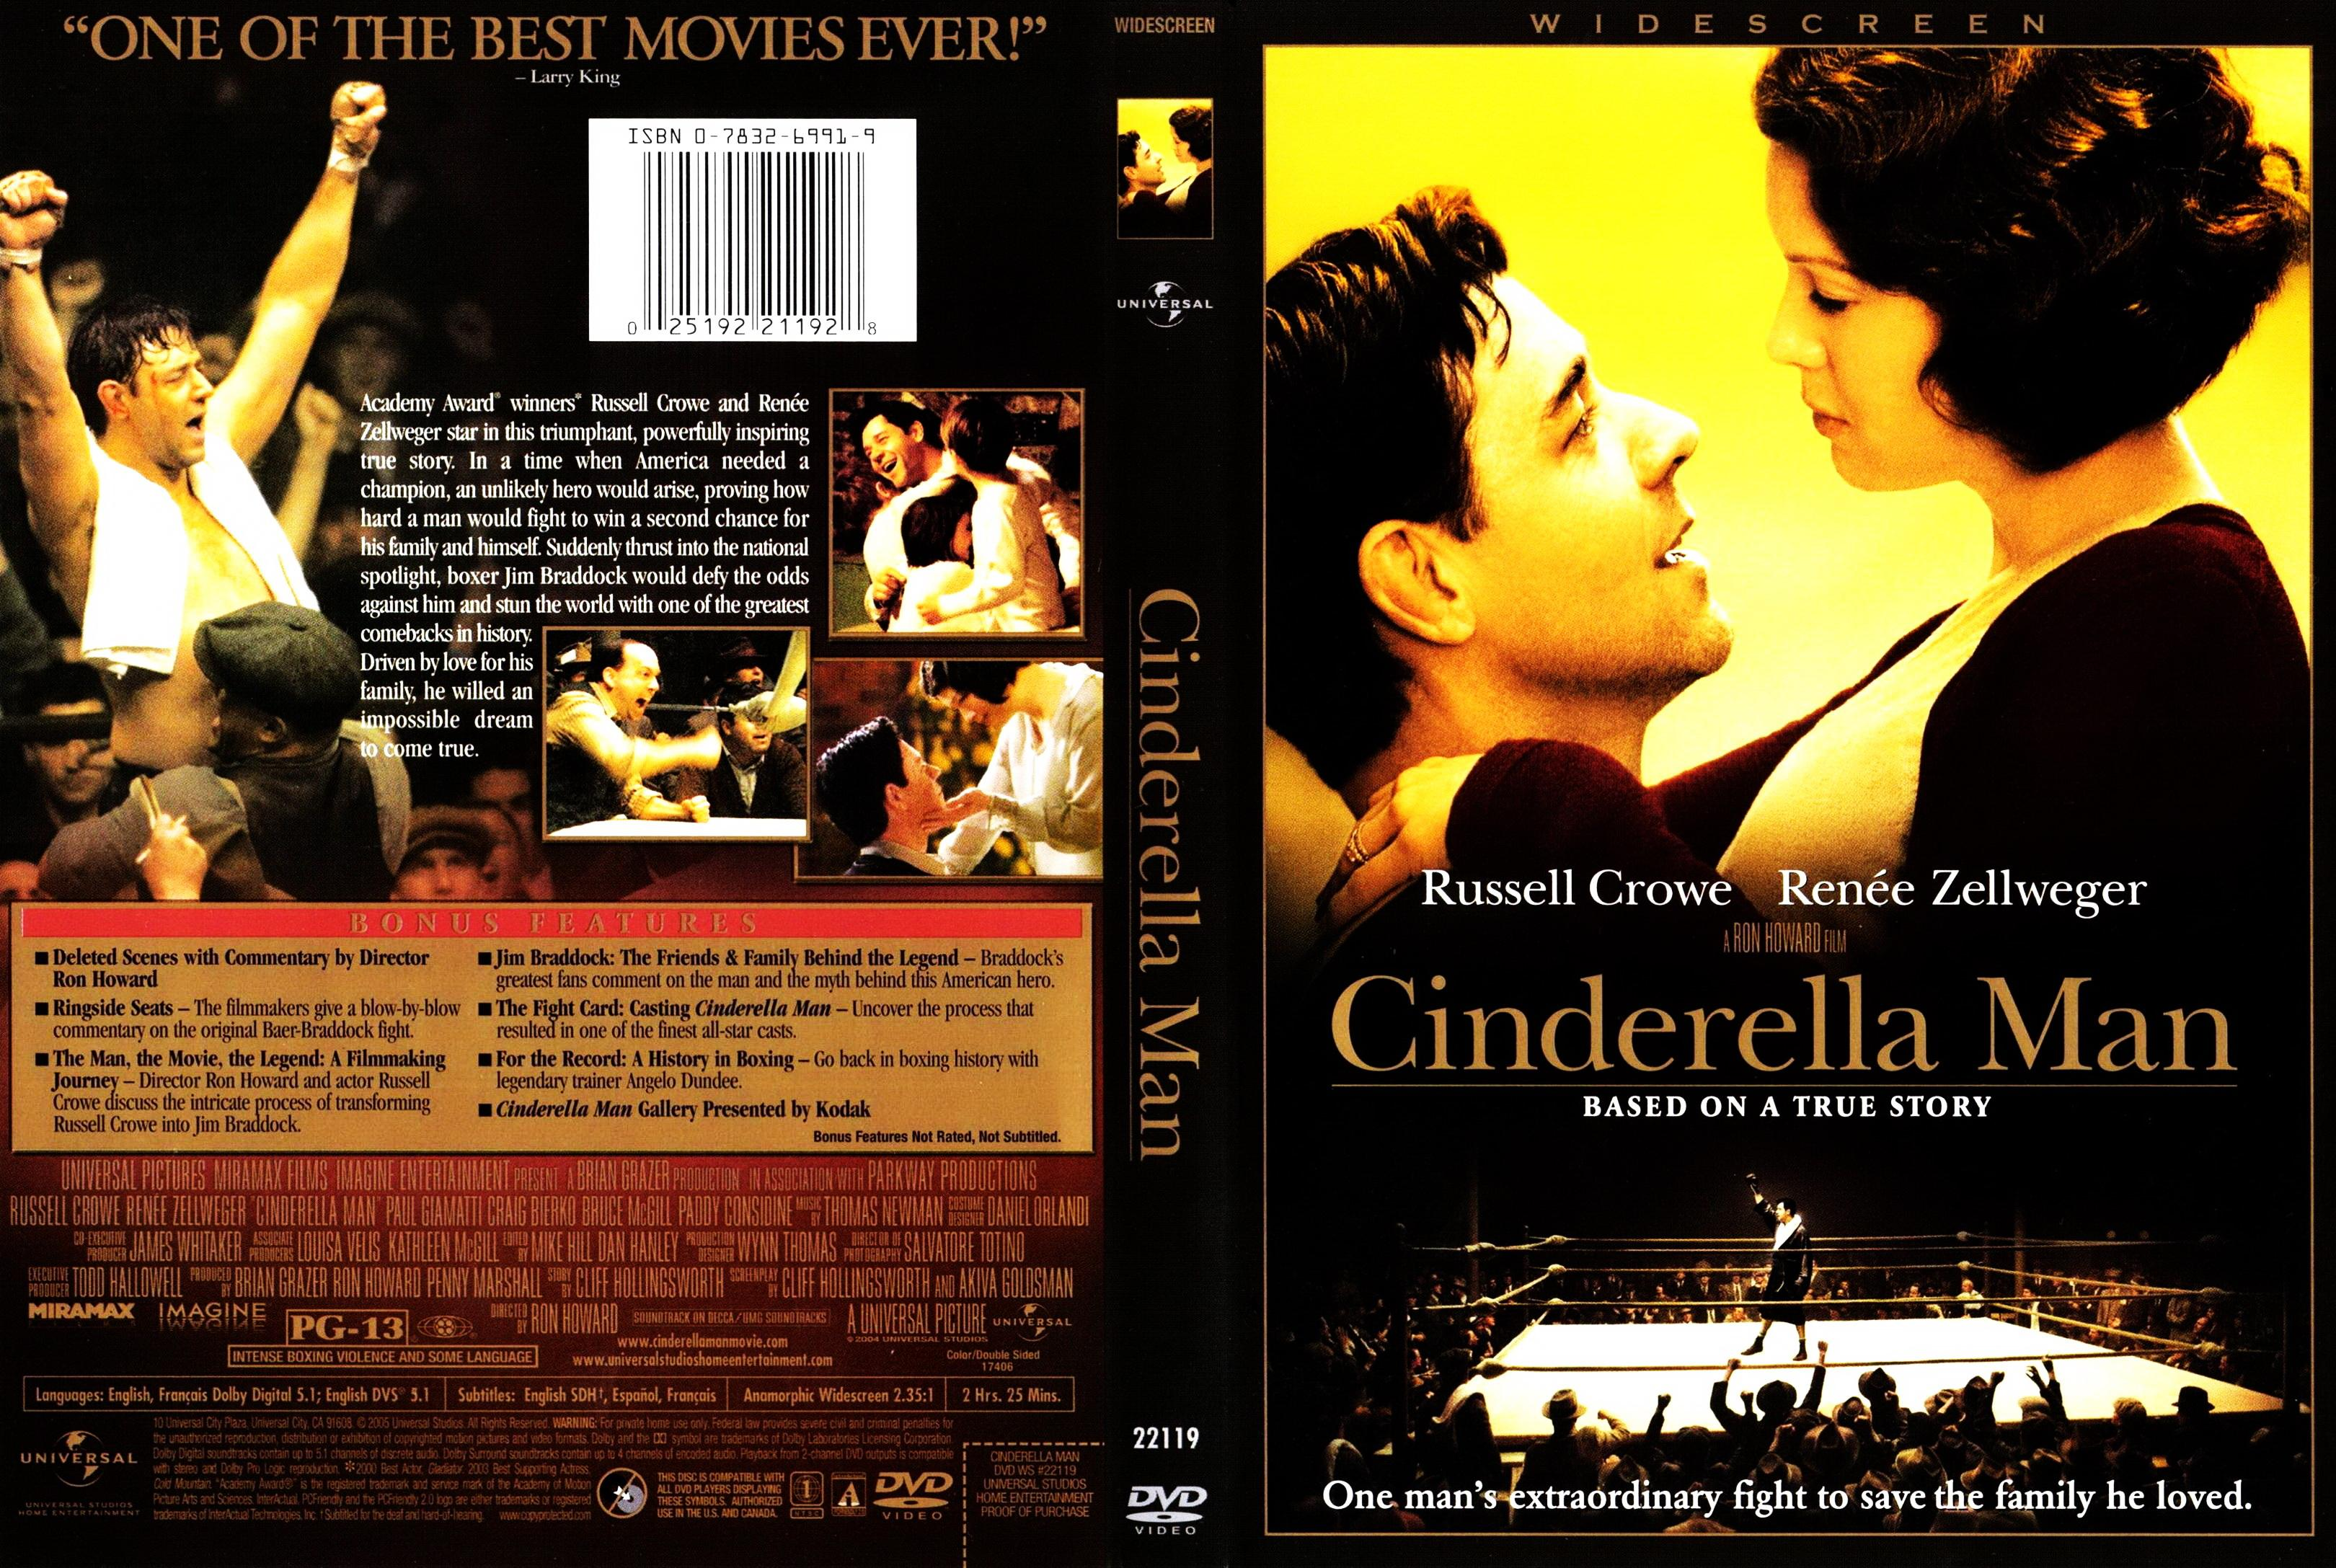 the life and struggles of boxing champion james braddock in the film cinderella man